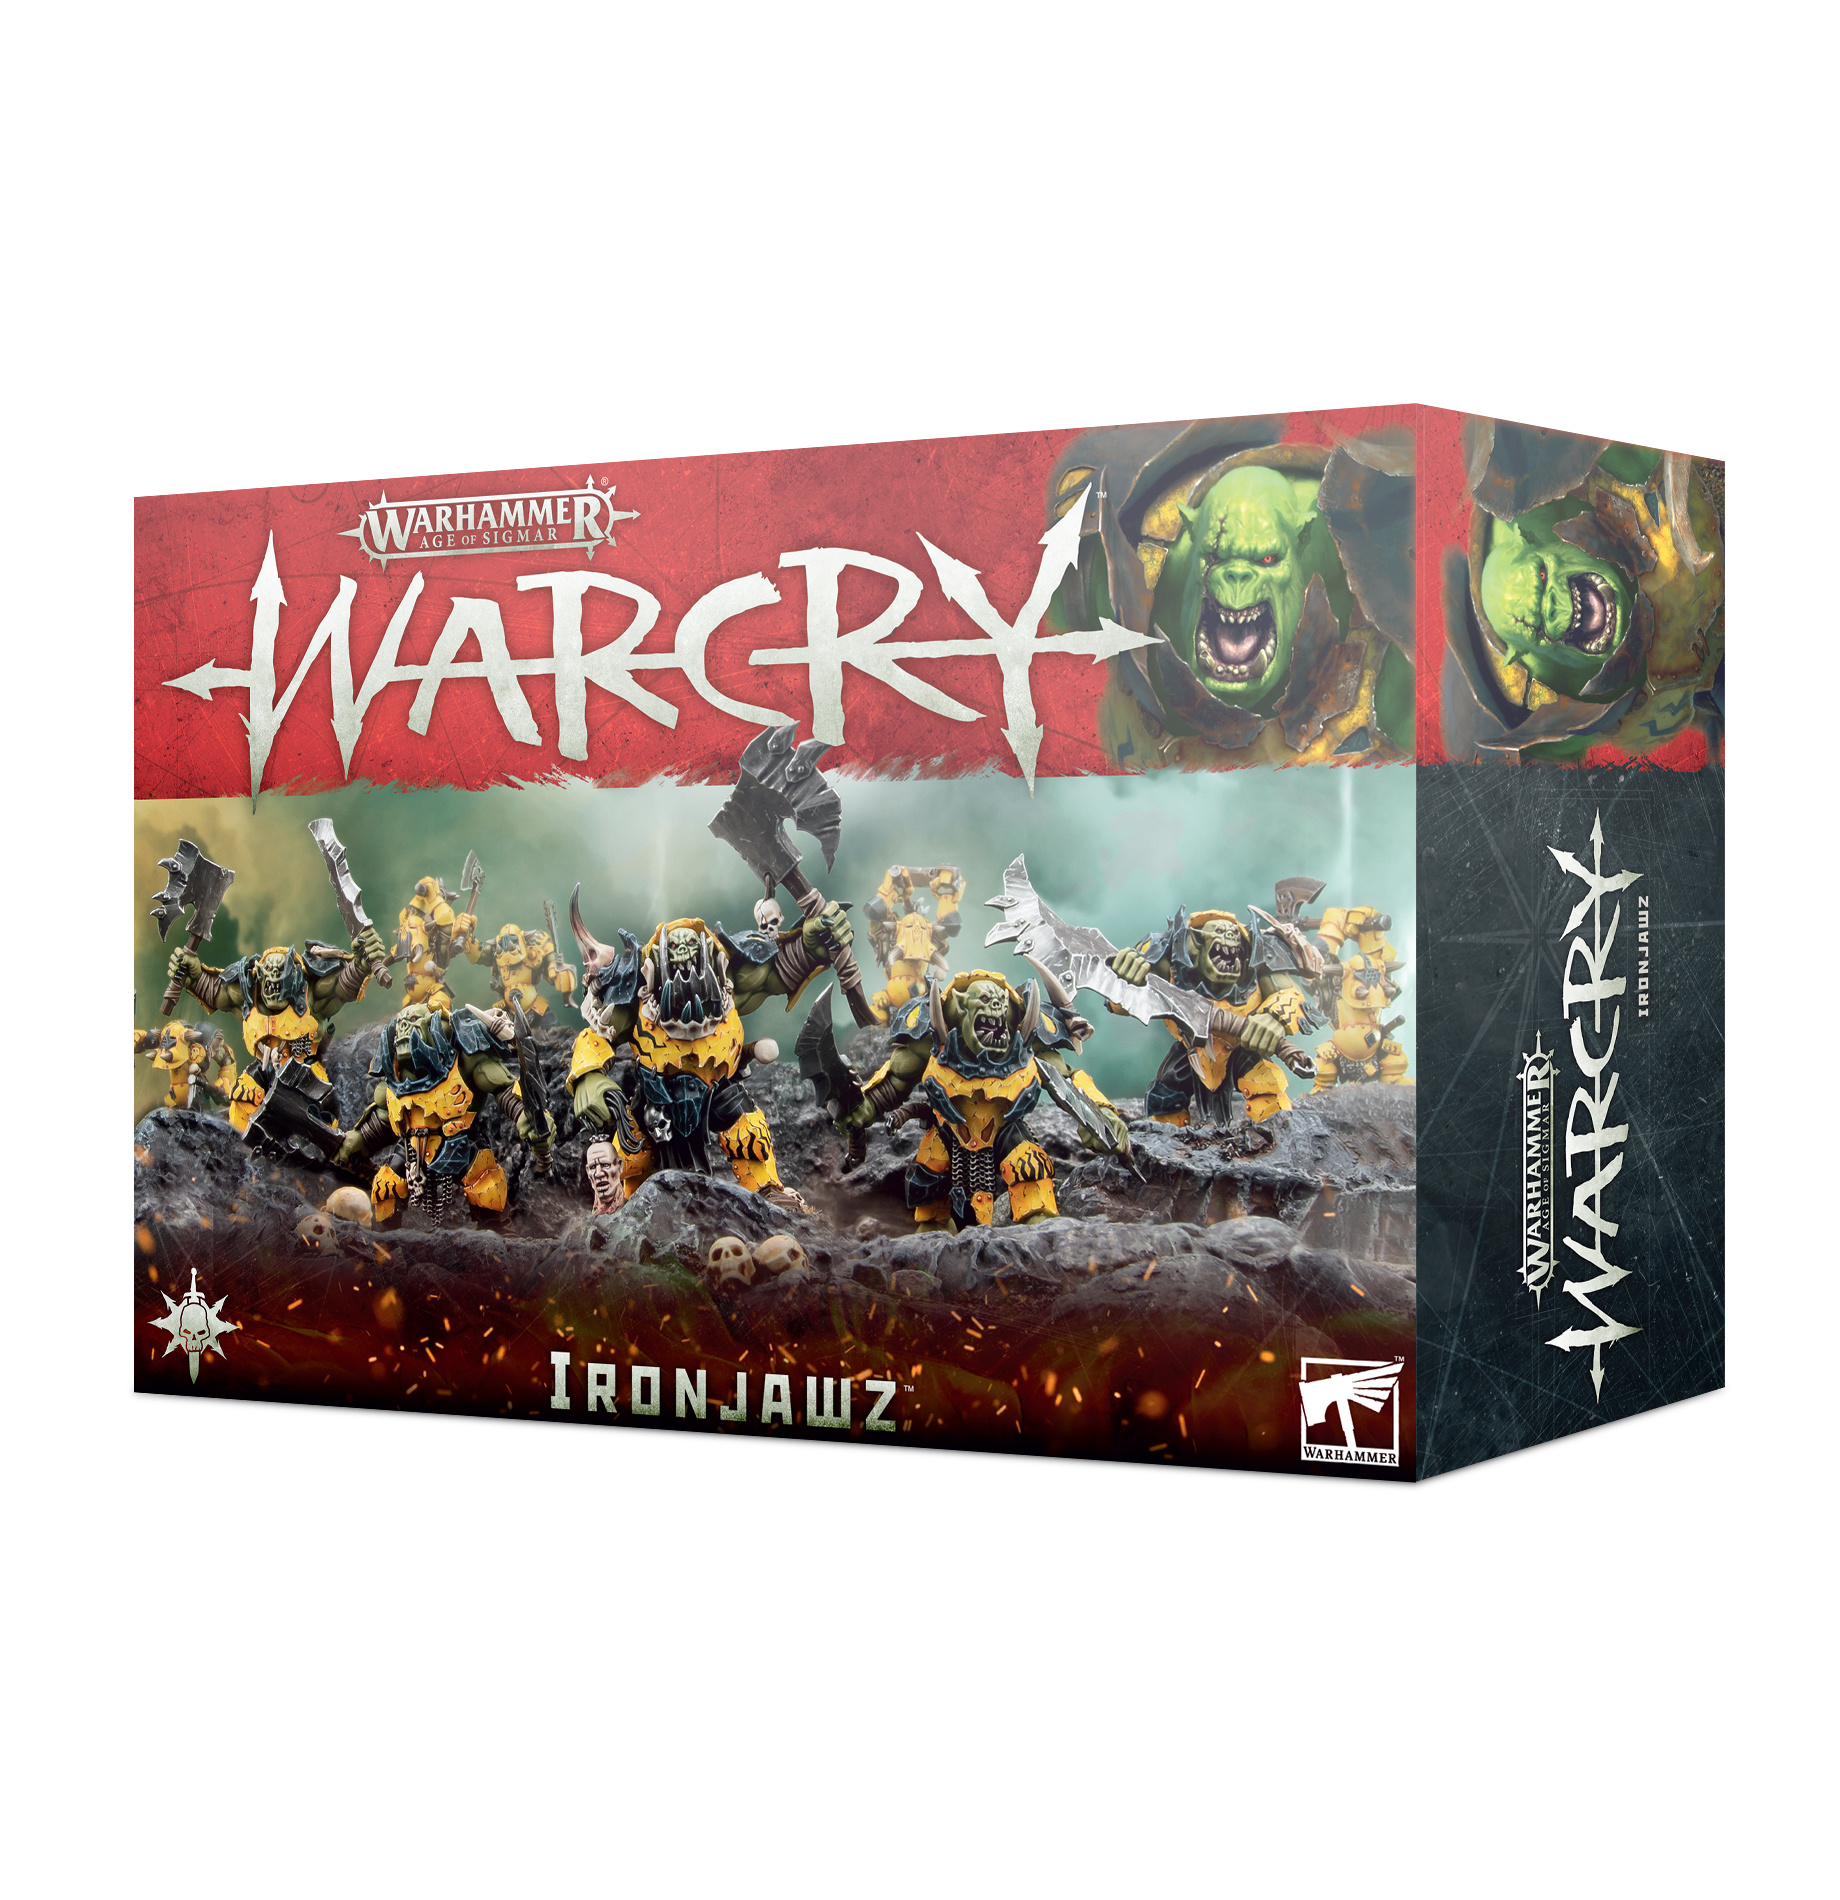 Games Workshop new releases ready to ship!